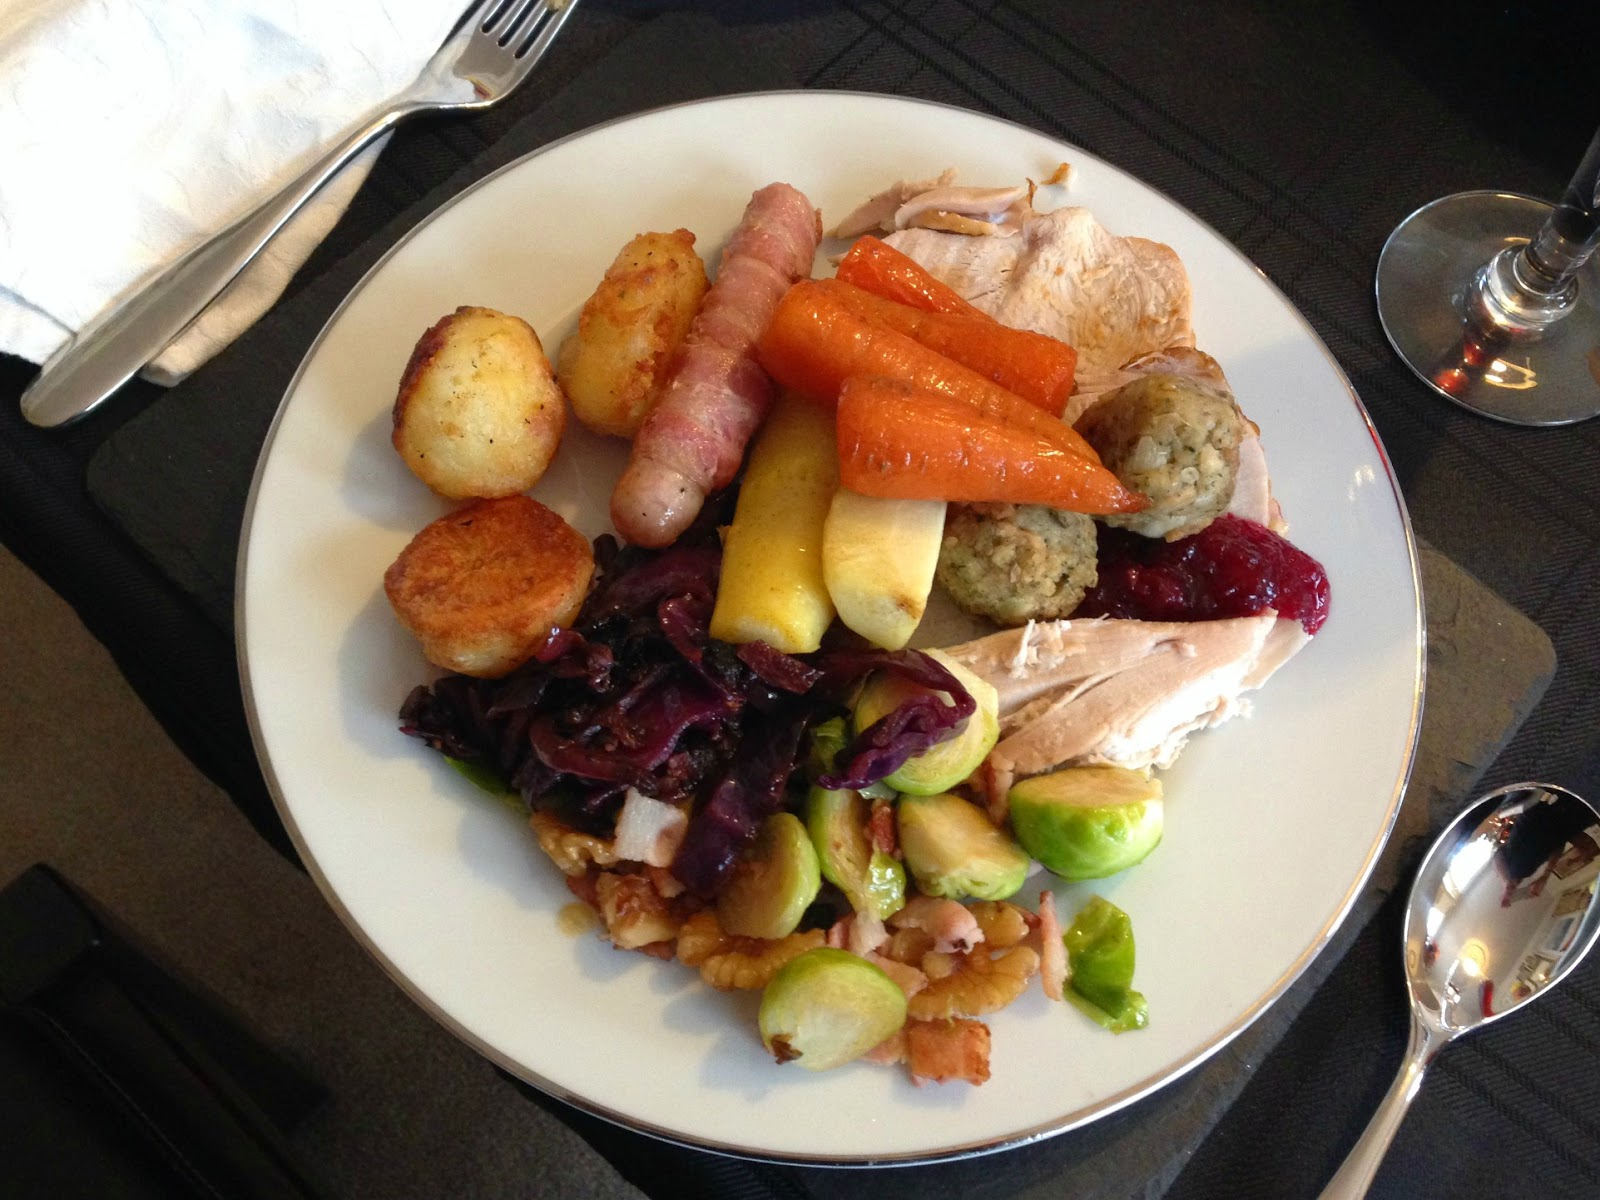 A plate of traditional Christmas dinner food